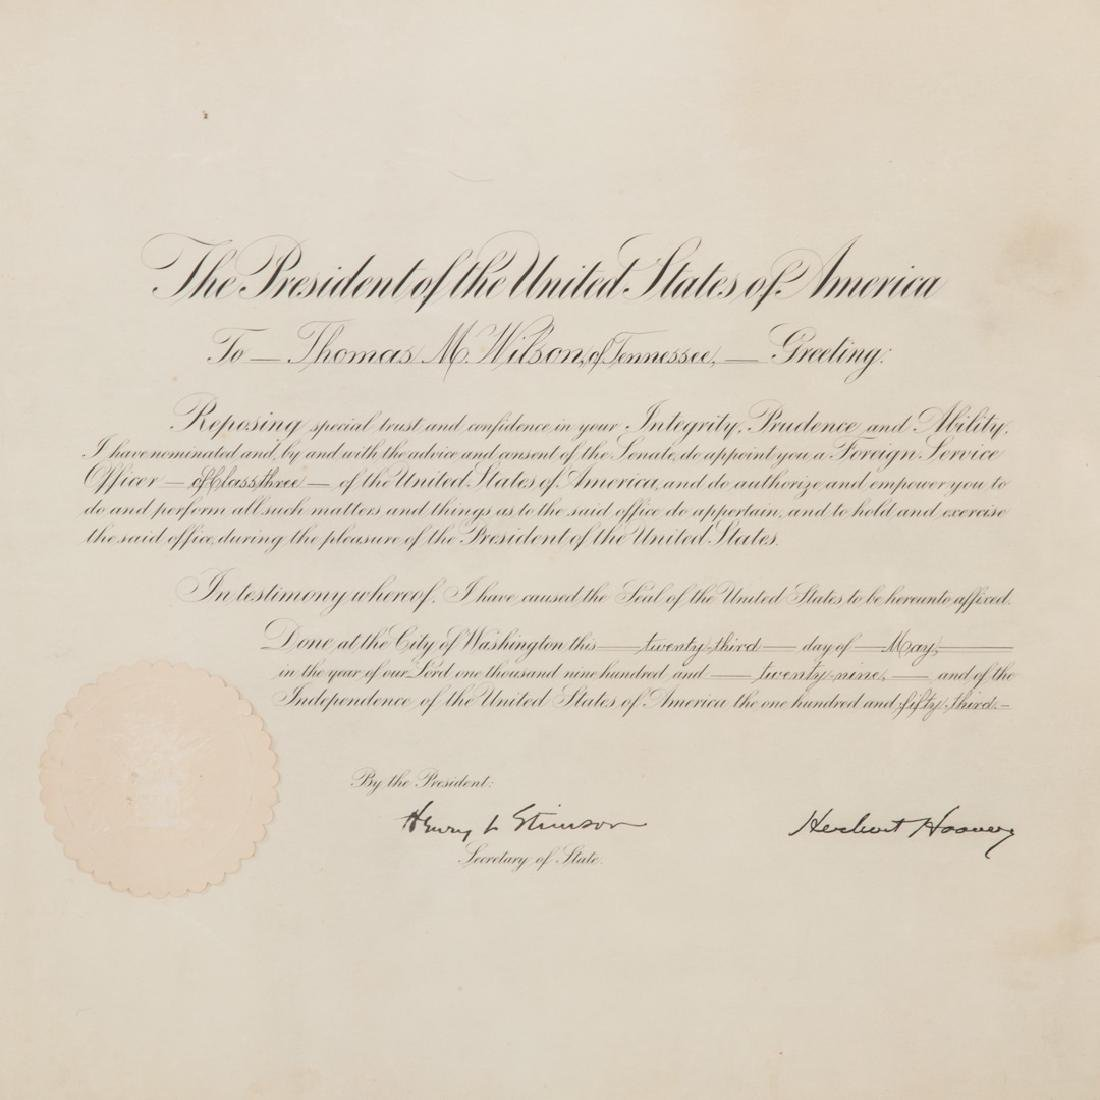 Hoover/Stimson signed document - 2